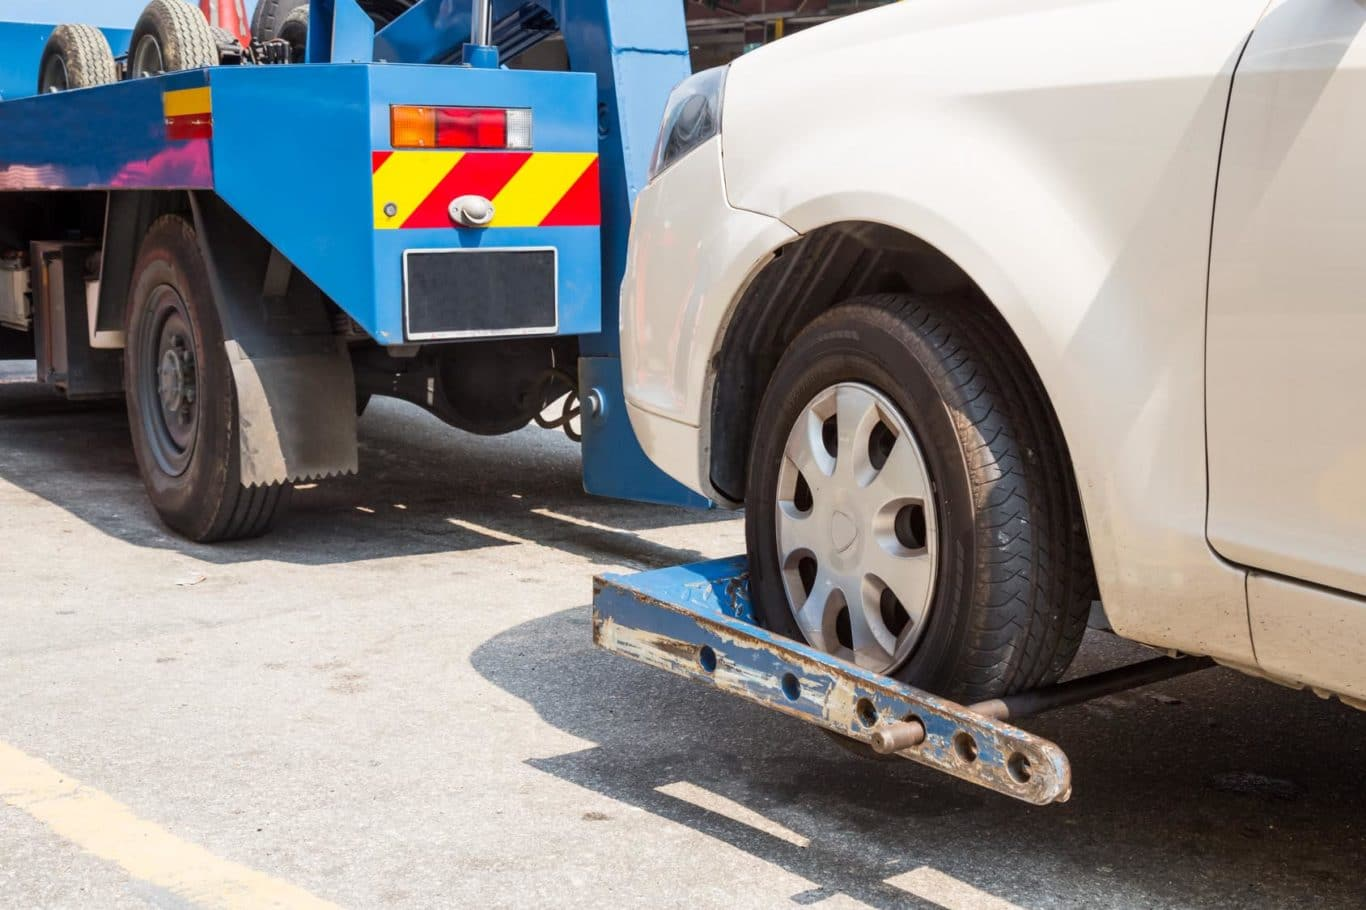 Tullyallen, County Louth expert Towing services